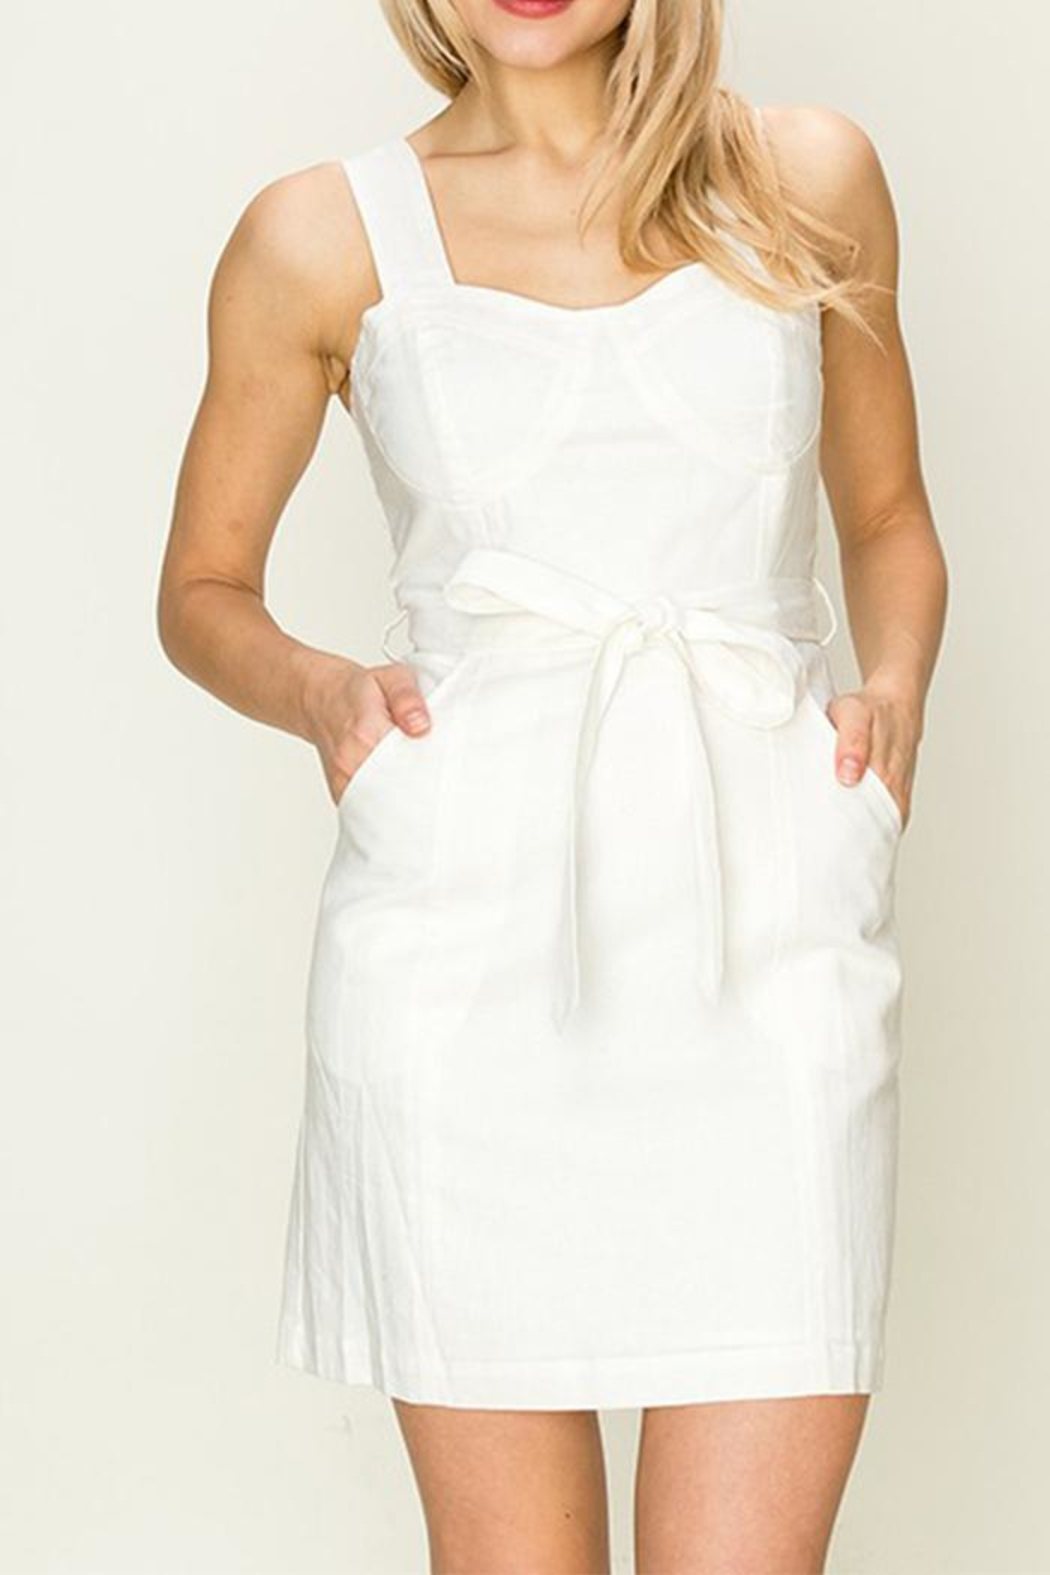 HYFVE White Tie-Front Dress - Front Cropped Image